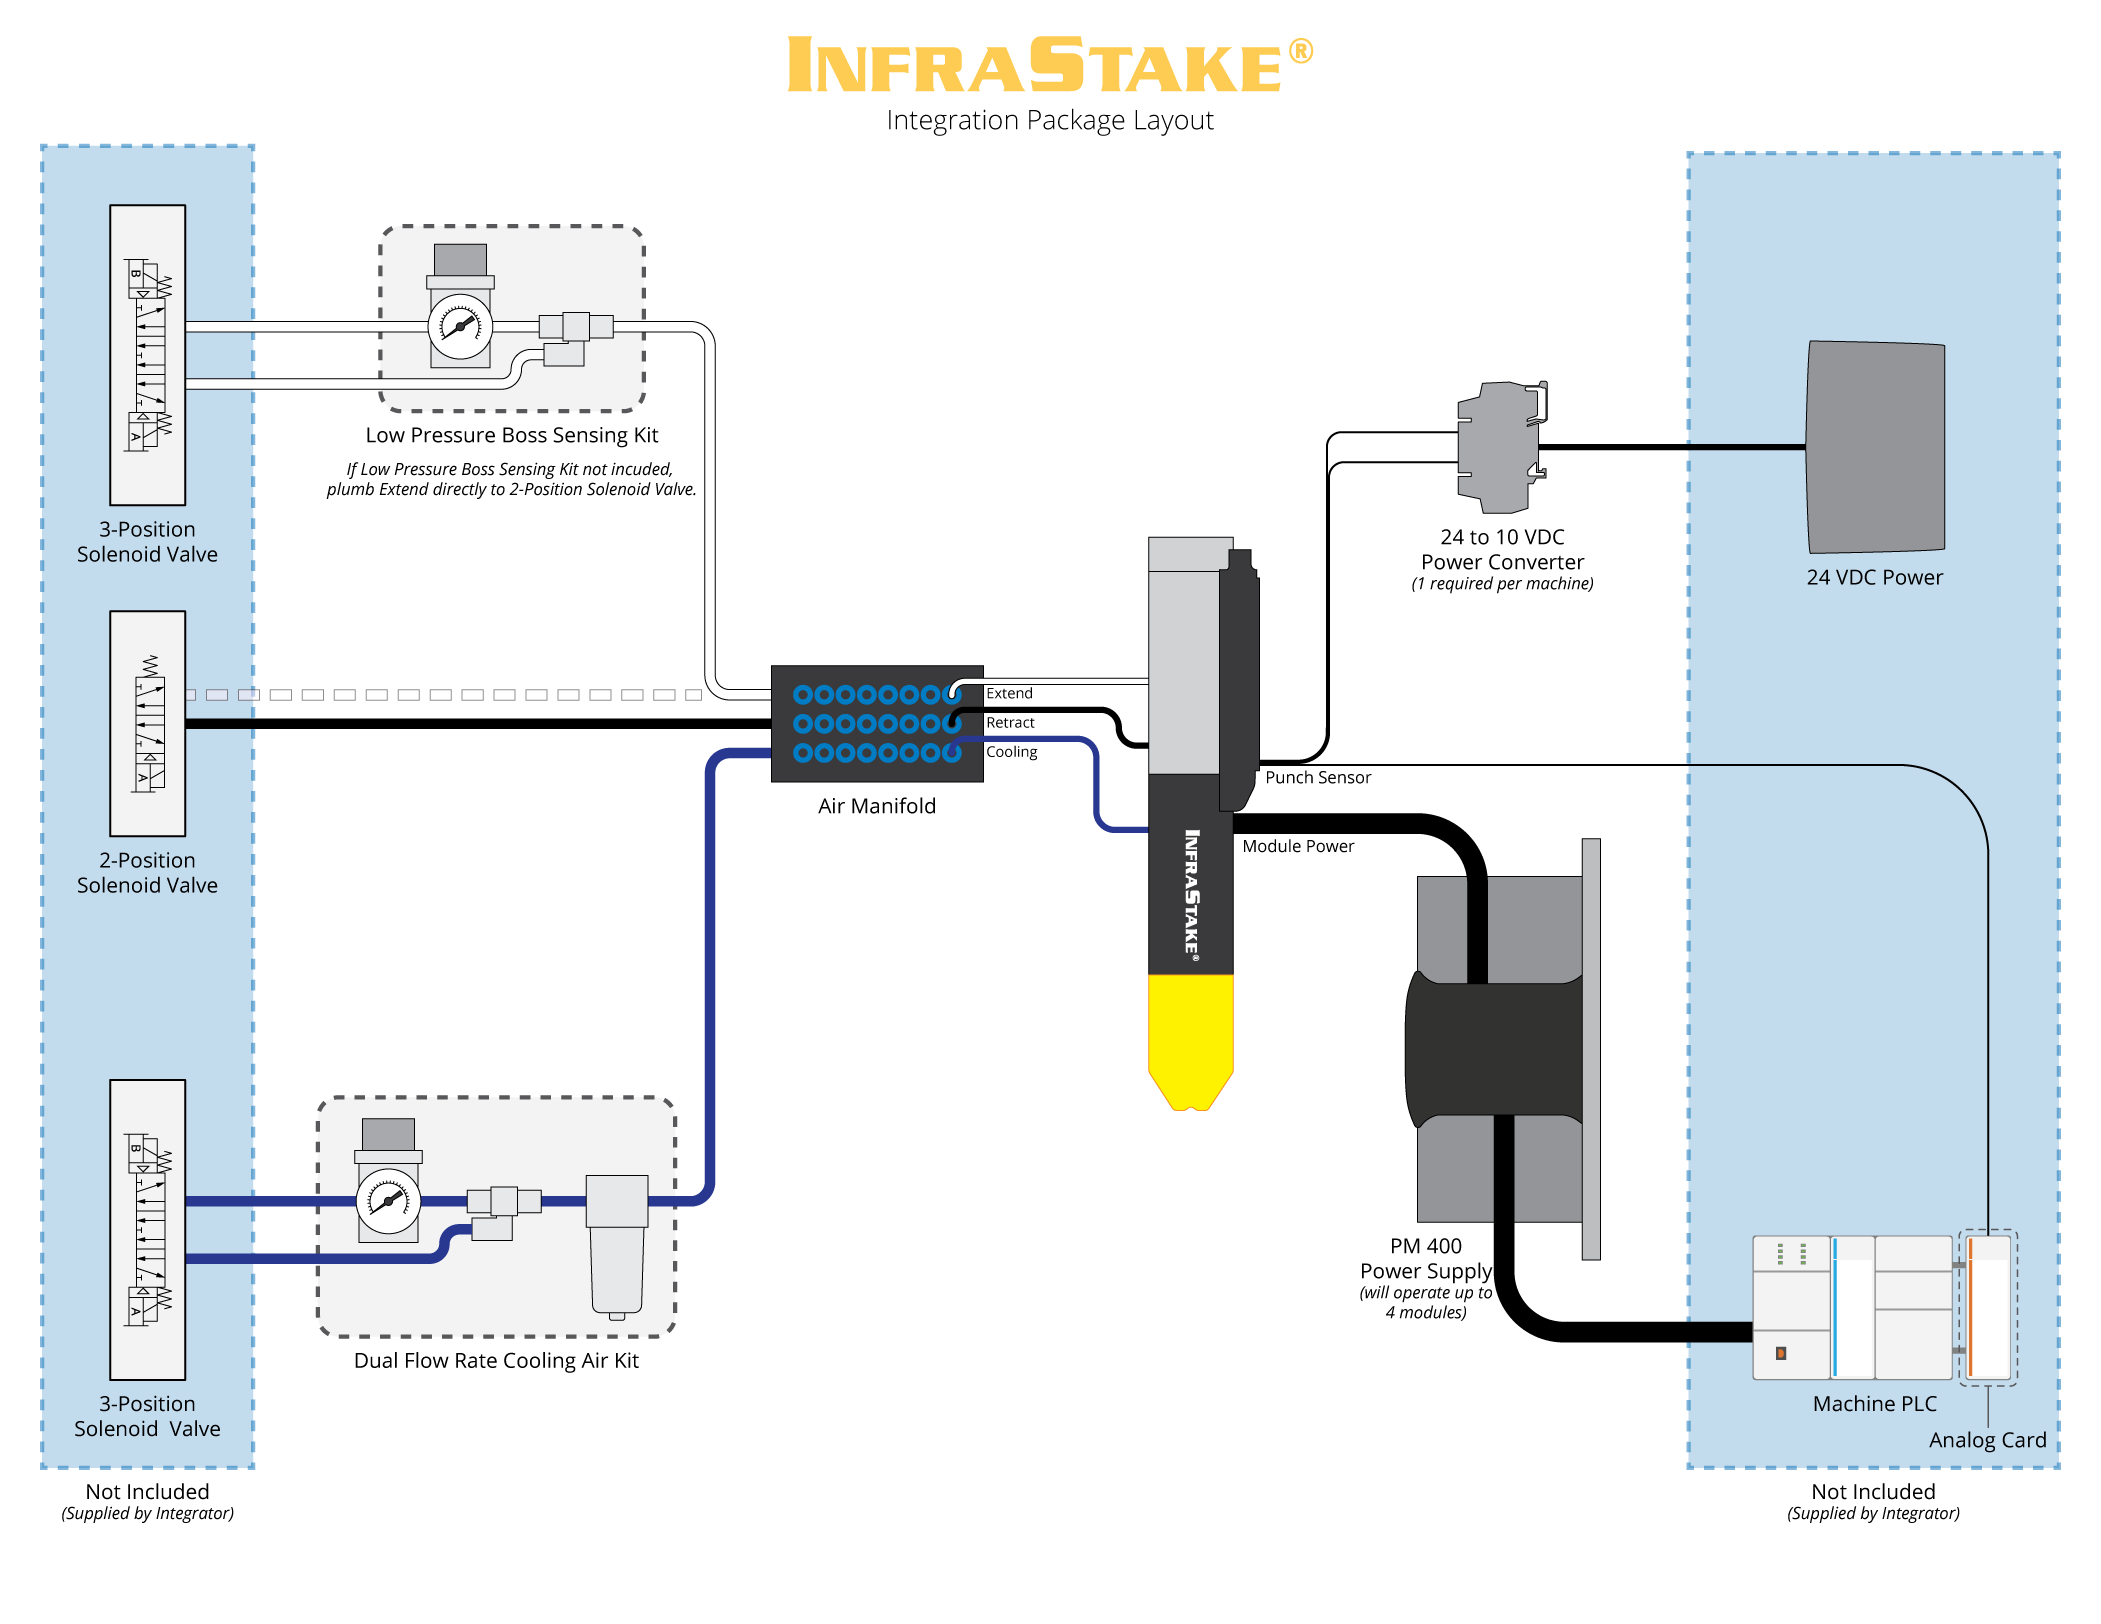 Download InfraStake Integration Package Layout